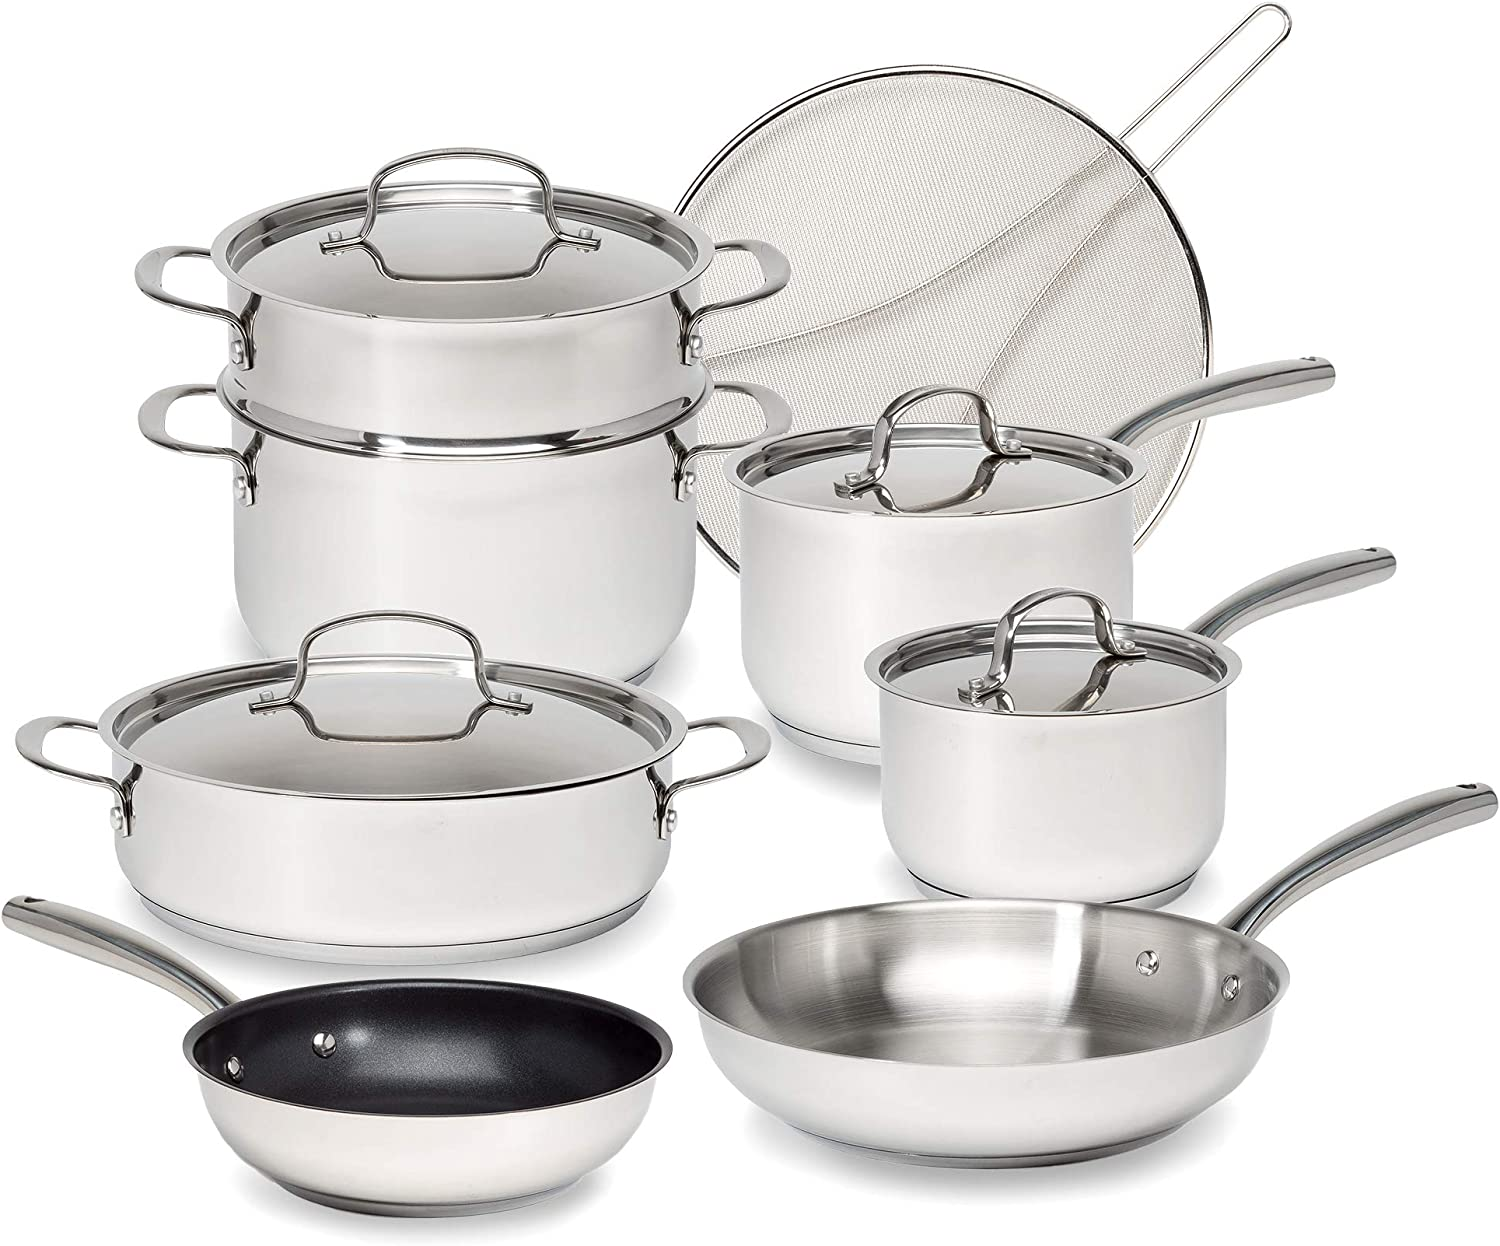 Goodful Classic Stainless Steel Cookware Set with Tri-Ply Base, Impact Bonded Pots and Pans, Dishwasher Safe, 12-Piece